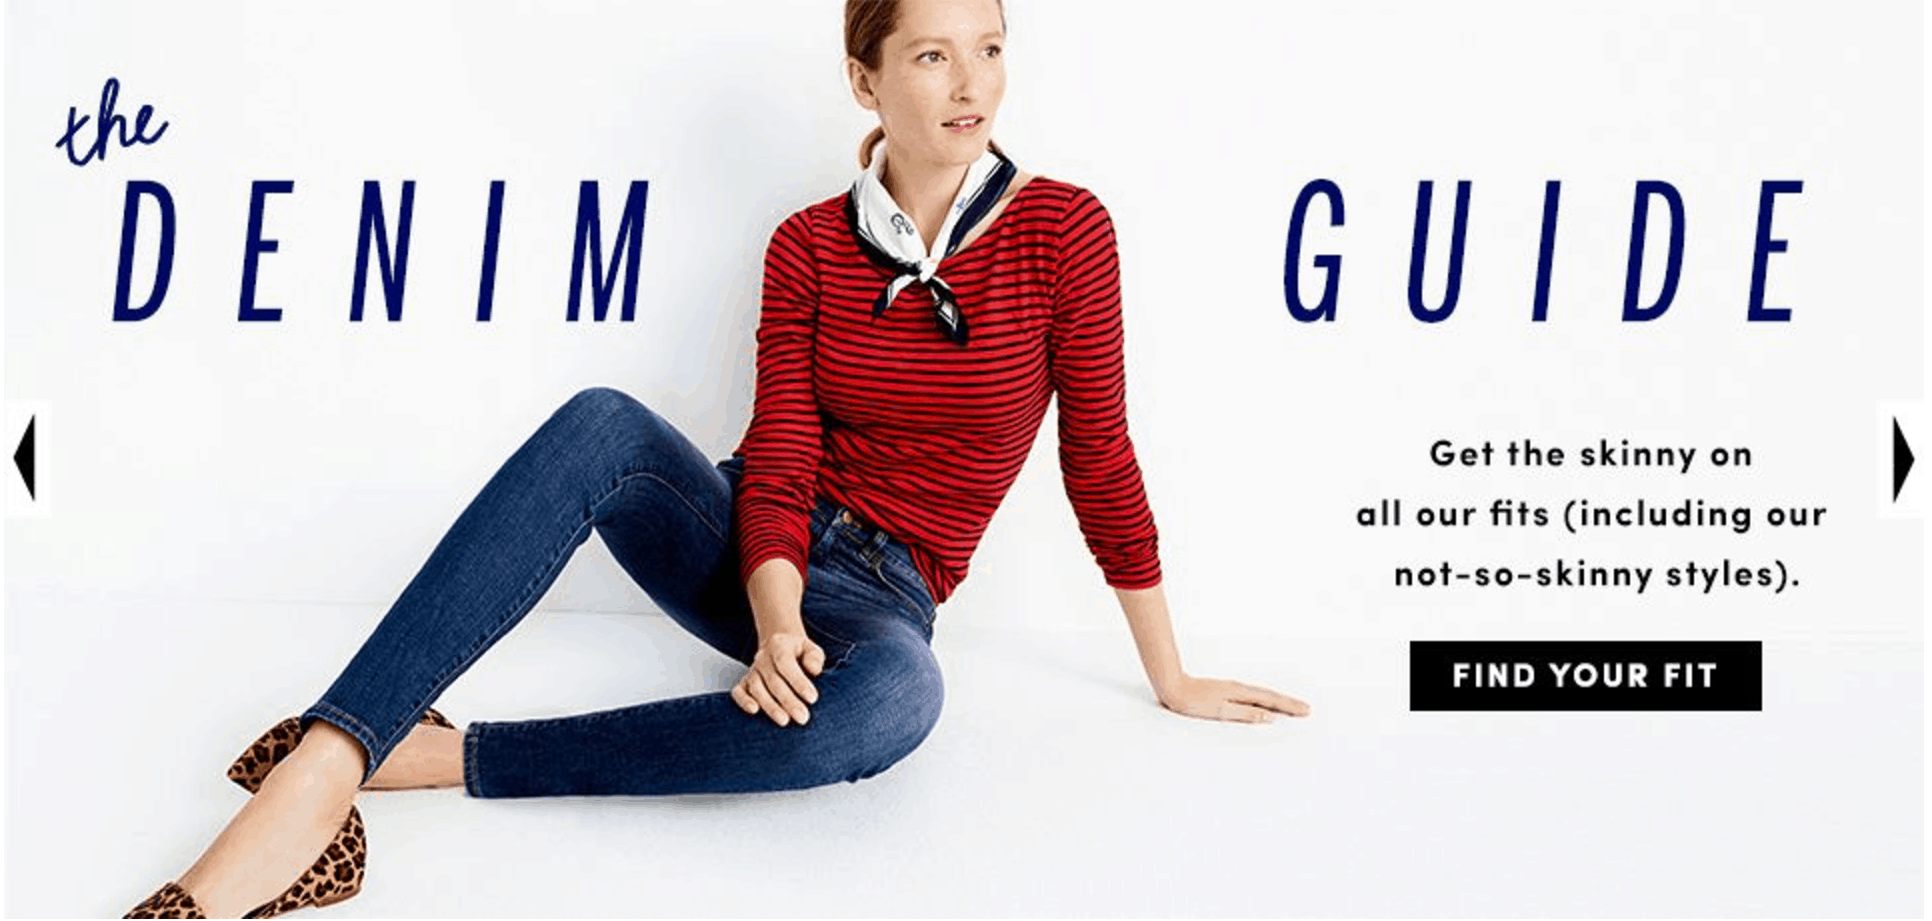 Screenshot of image from J.Crew Factory Canada website